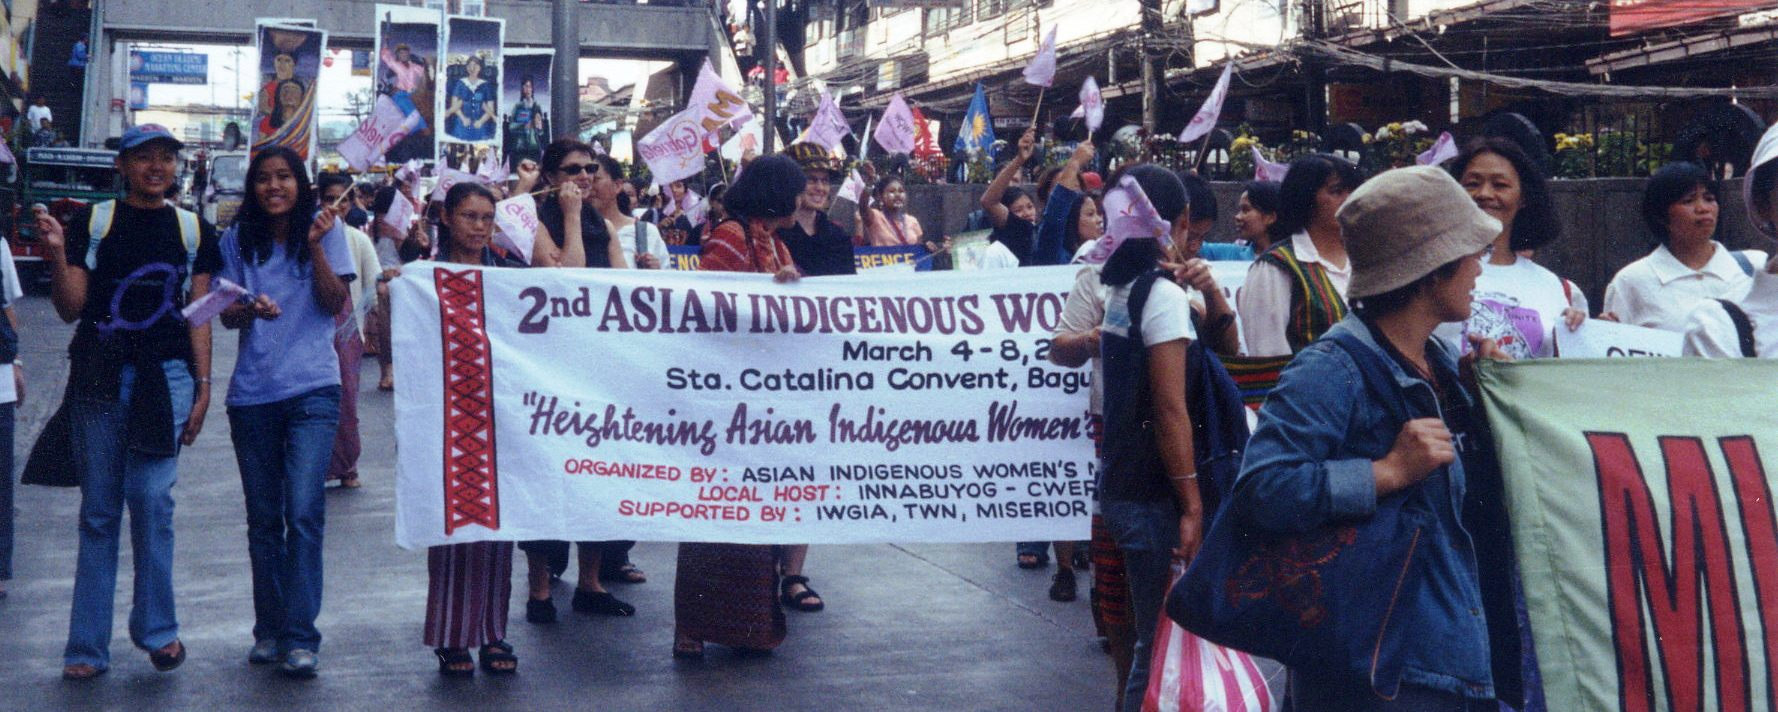 Baguio Declaration of the Second Asian Indigenous Women's Conference